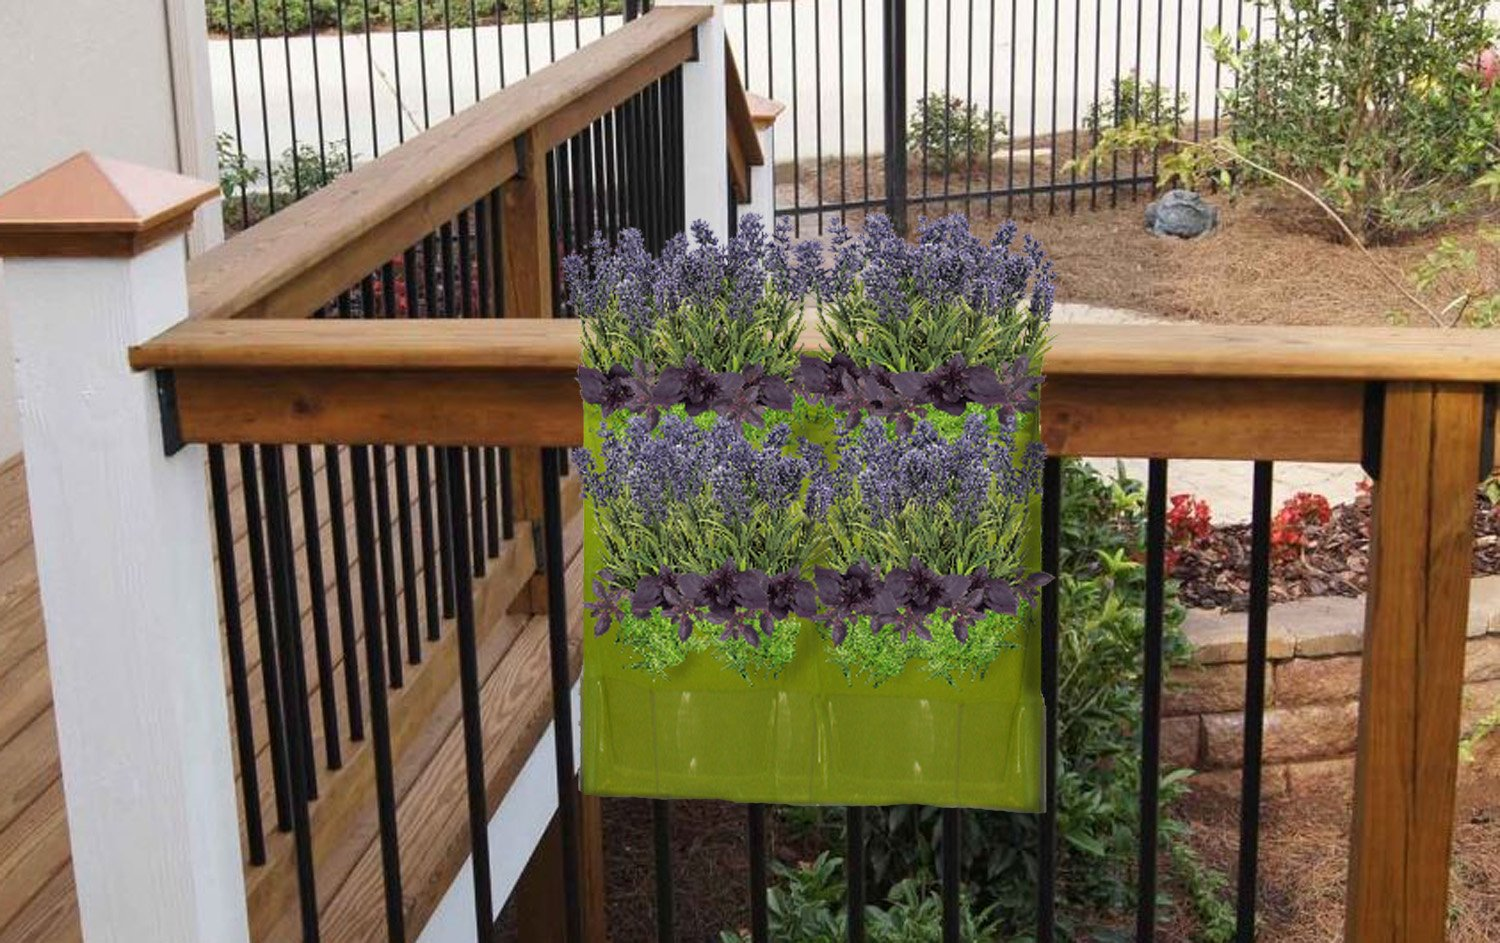 Vertical hanging planter wall garden herb kit indoor for Garden decking kits on ebay